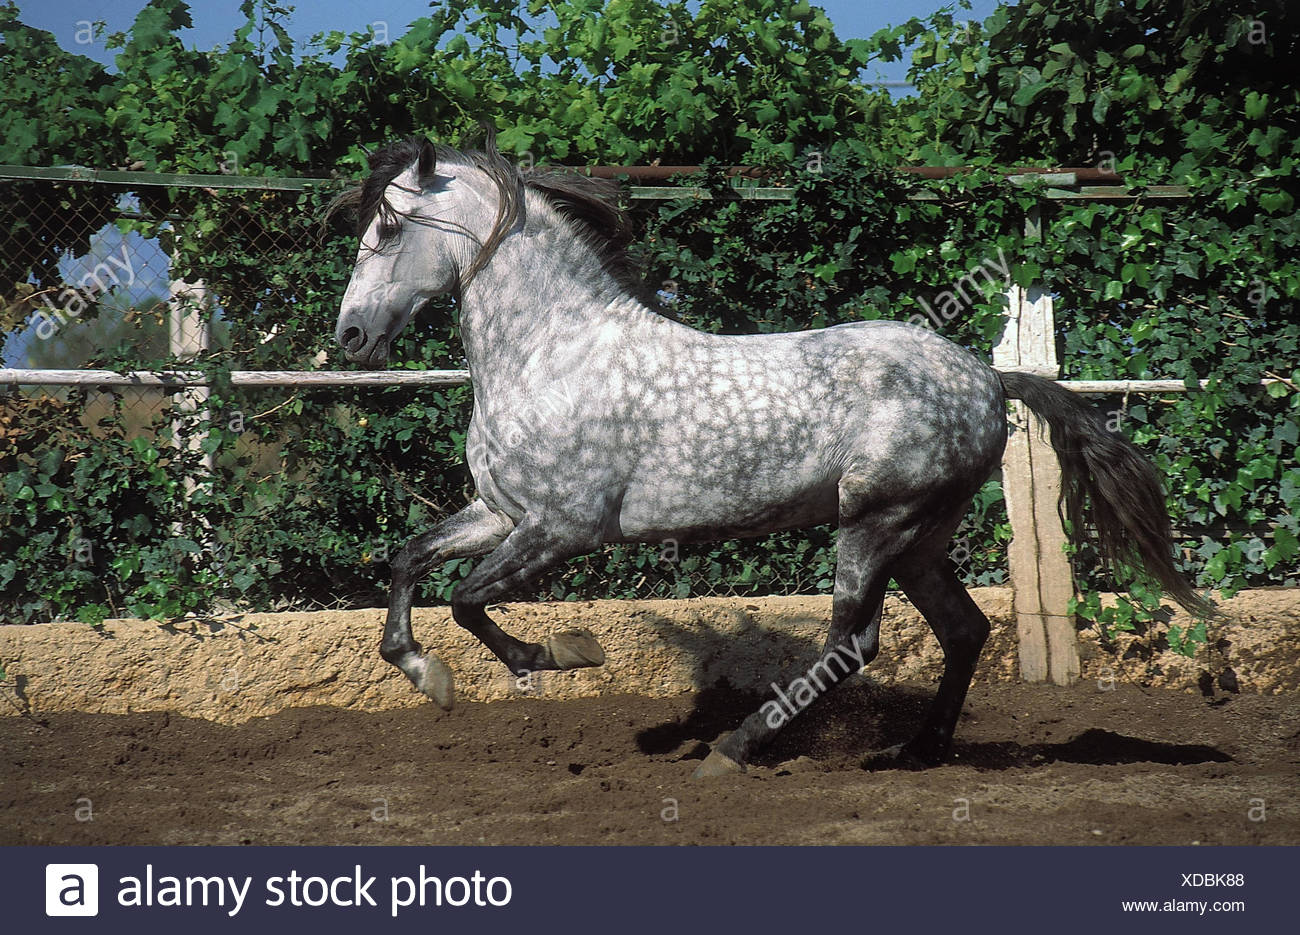 Belt, horse, Andalusian, gallop, animal, animals, horses, mammal, mammals, benefit animal, benefit animals, riding animal, riding animals, hoofed animal, hoofed animals, stallion, race, thoroughbred horse, horse's race, motion, force, starch, gallop - Stock Image